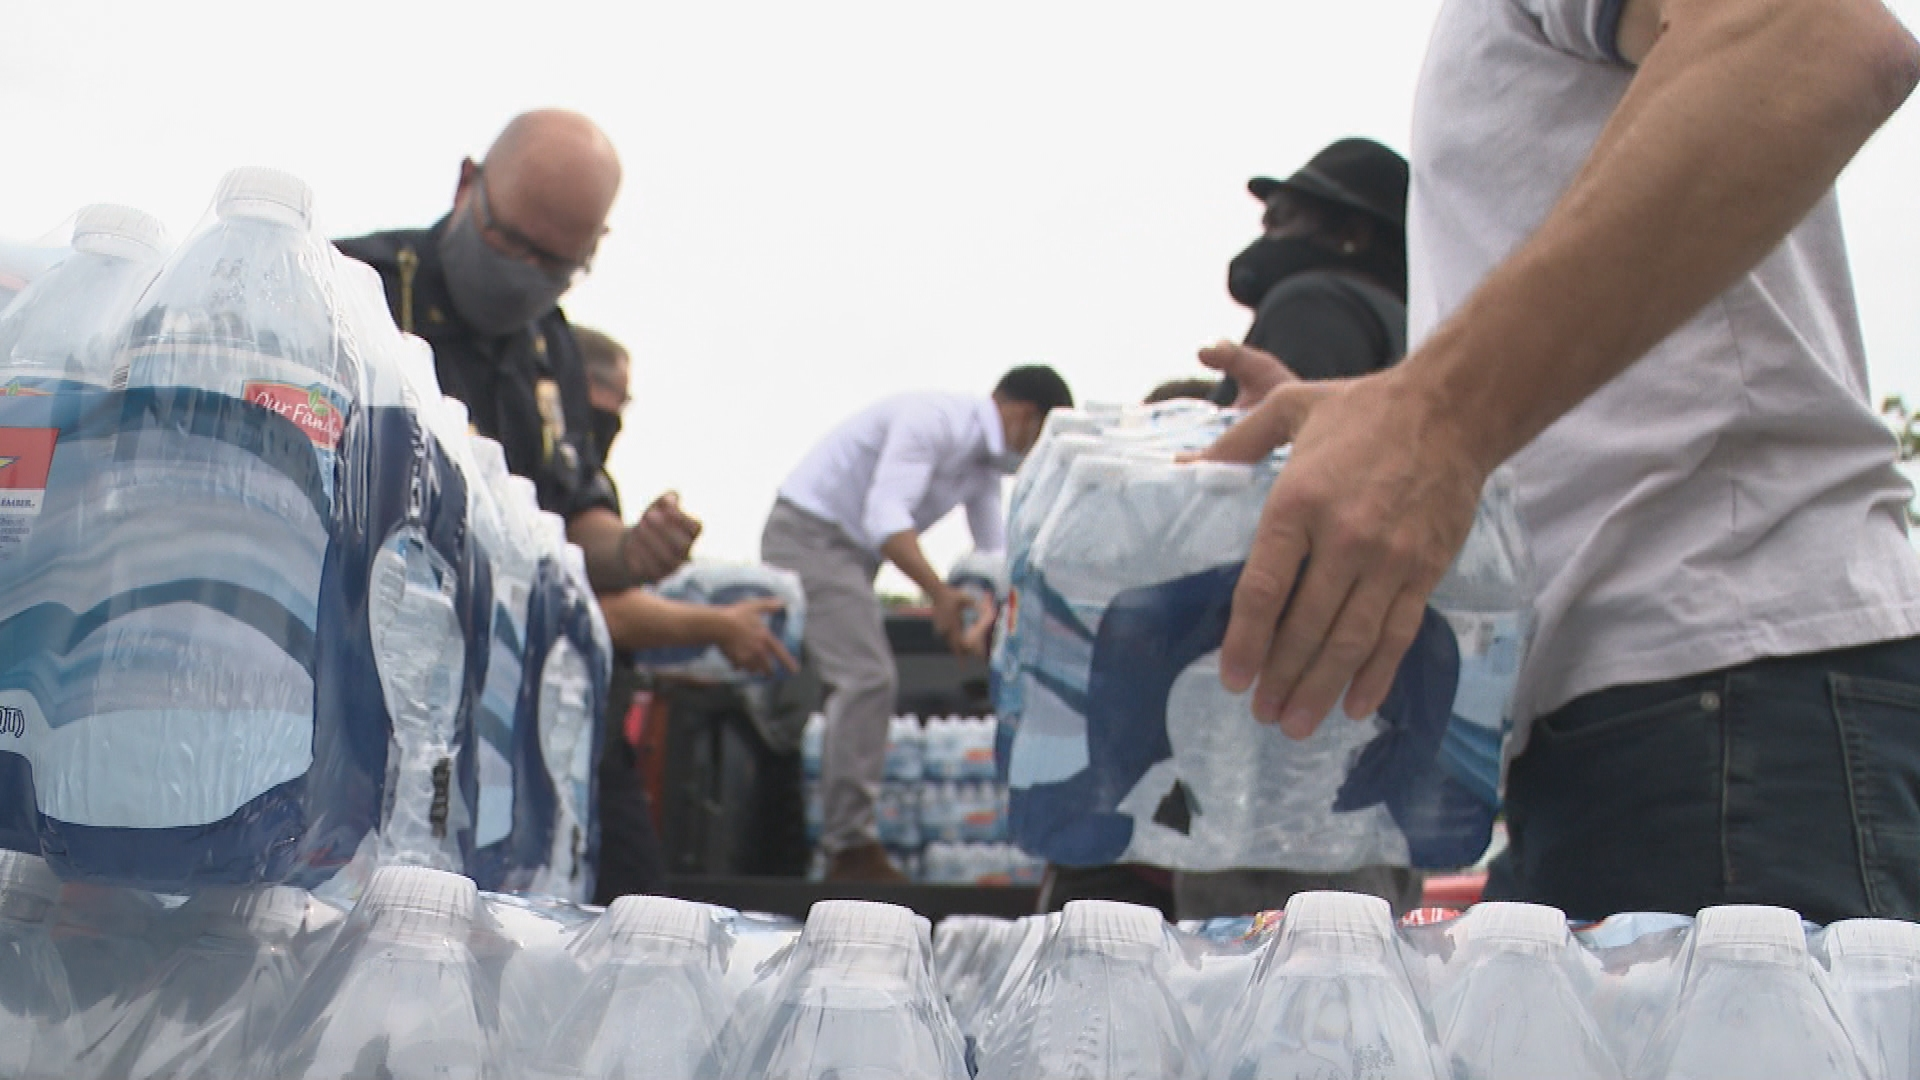 Several organizations were involved in the donation process, Thursday, July 30, 2020.{ } Including, Village in the Valley, Uplift Kalamazoo as well as Portage police, The city of Portage, and Kalamazoo. (WWMT/Jason Heeres)